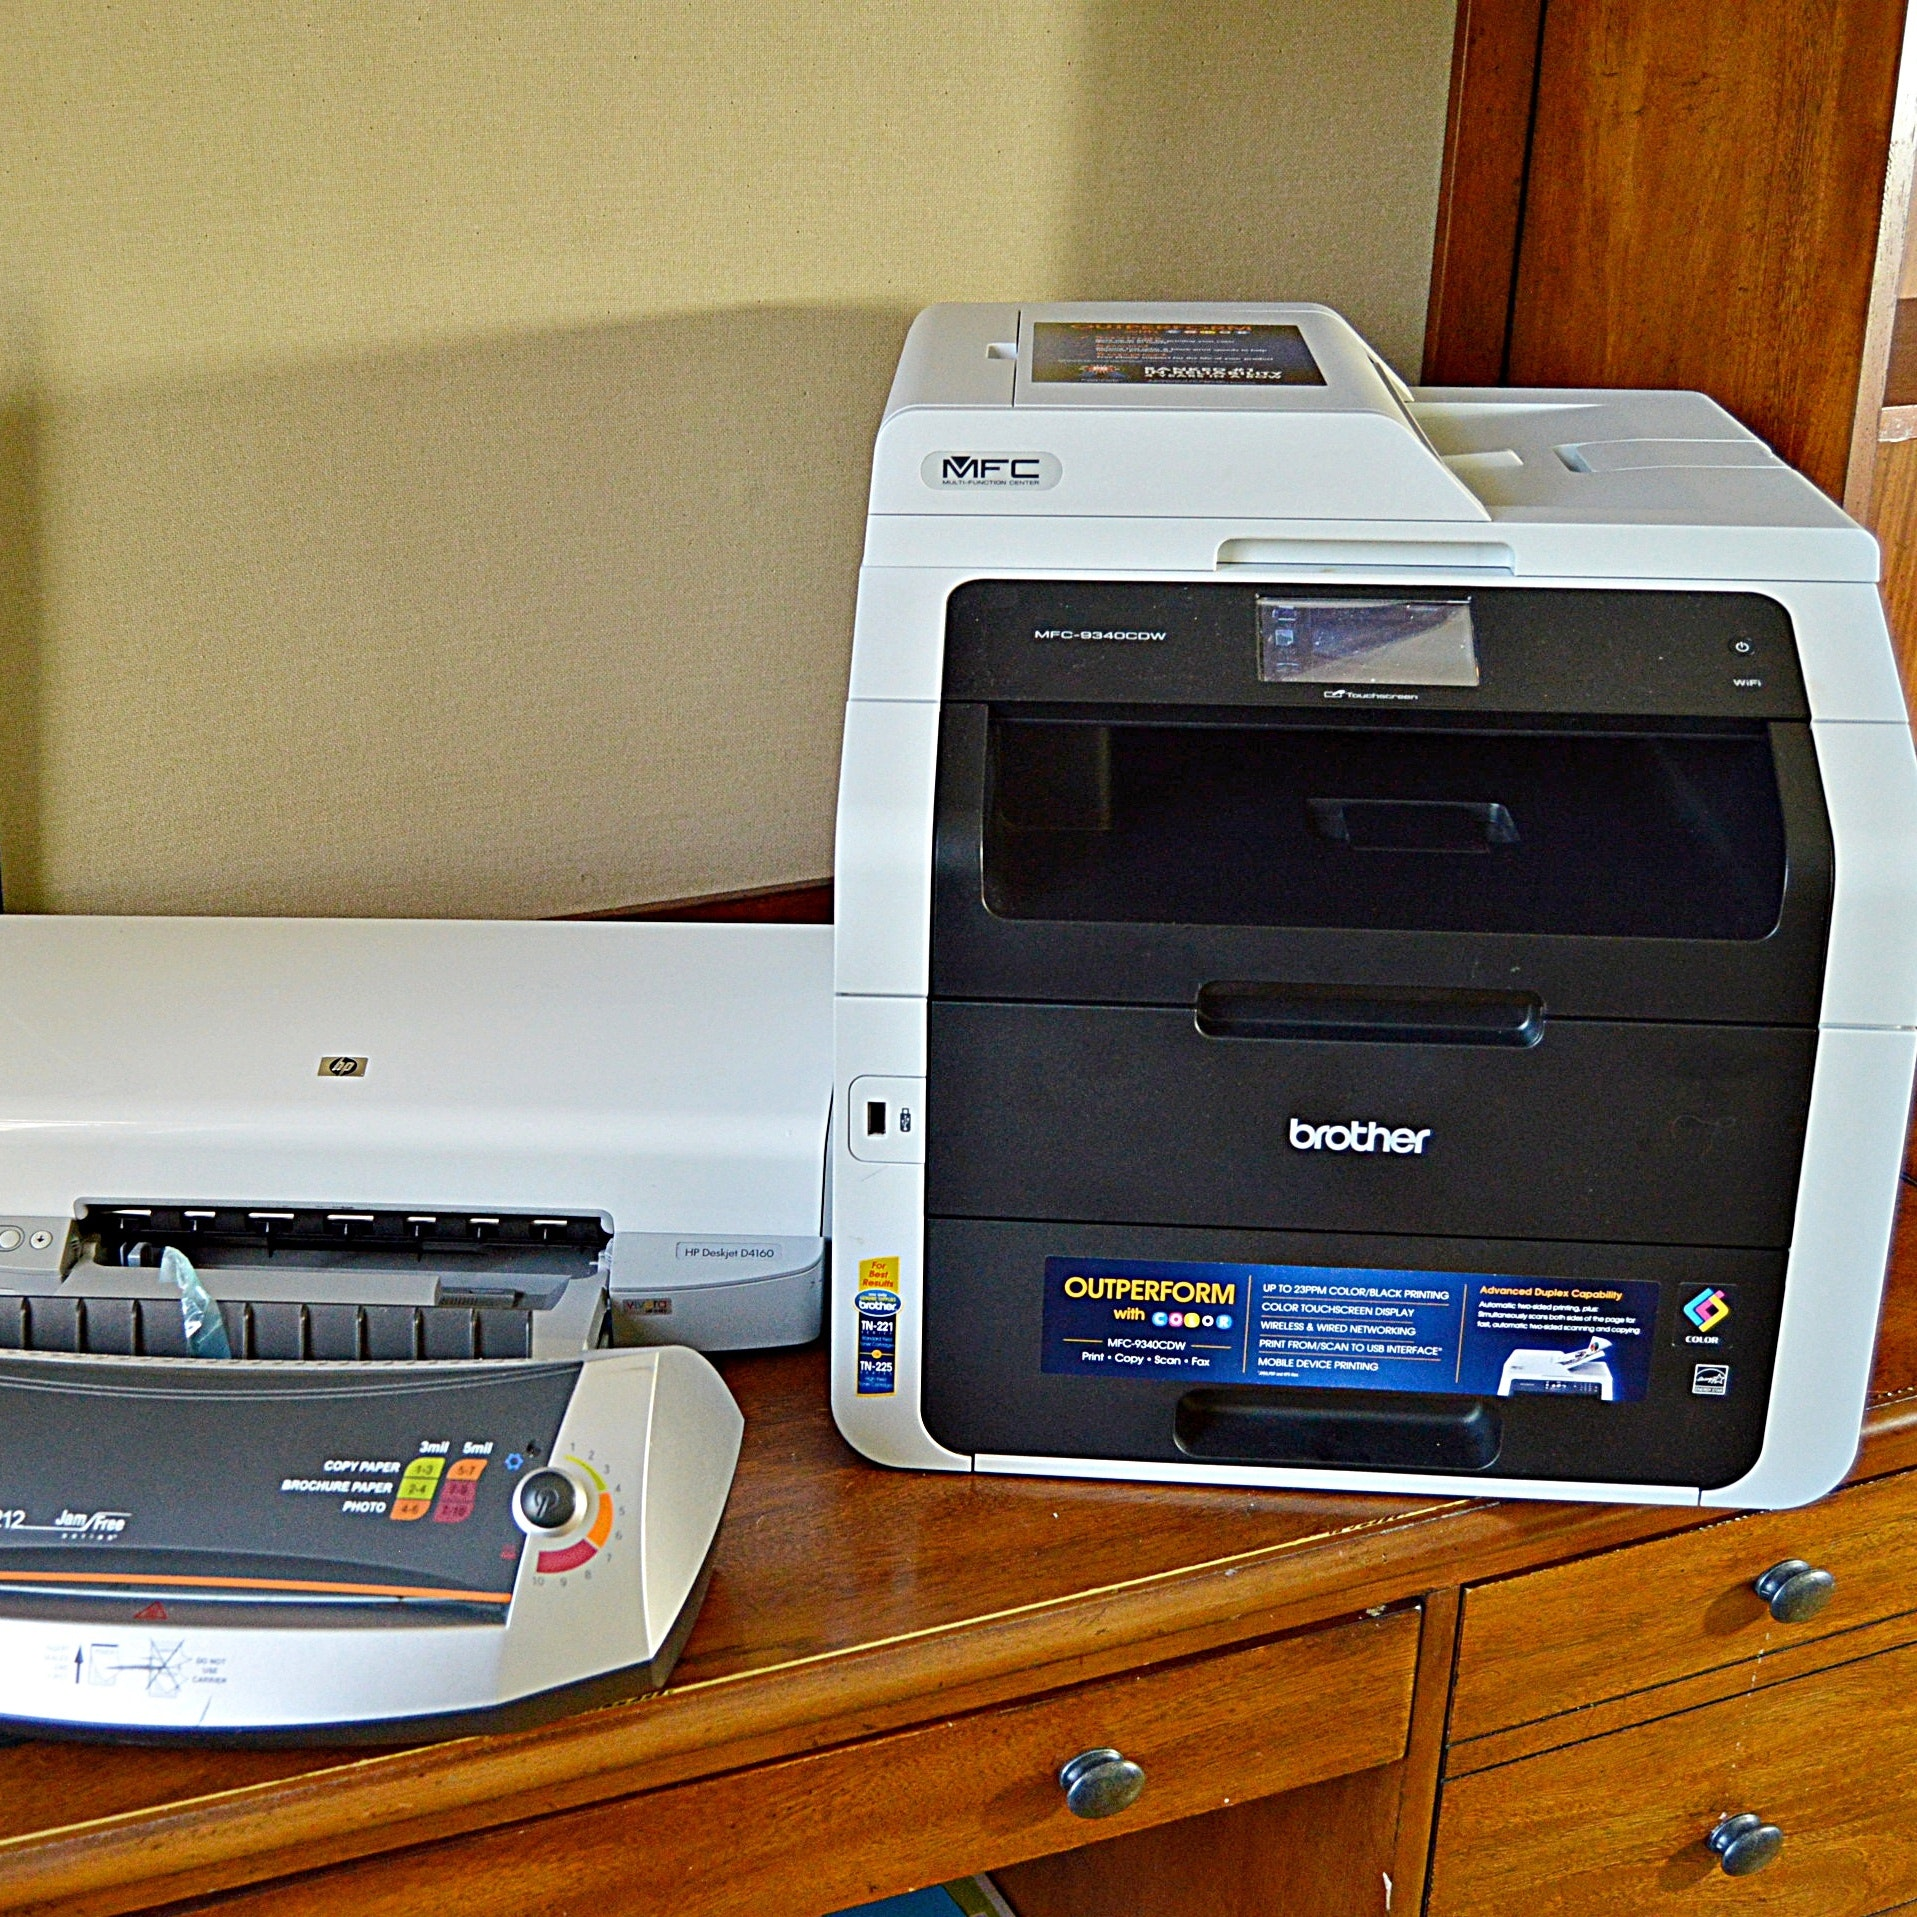 Office Equipment With Brother Color Printer